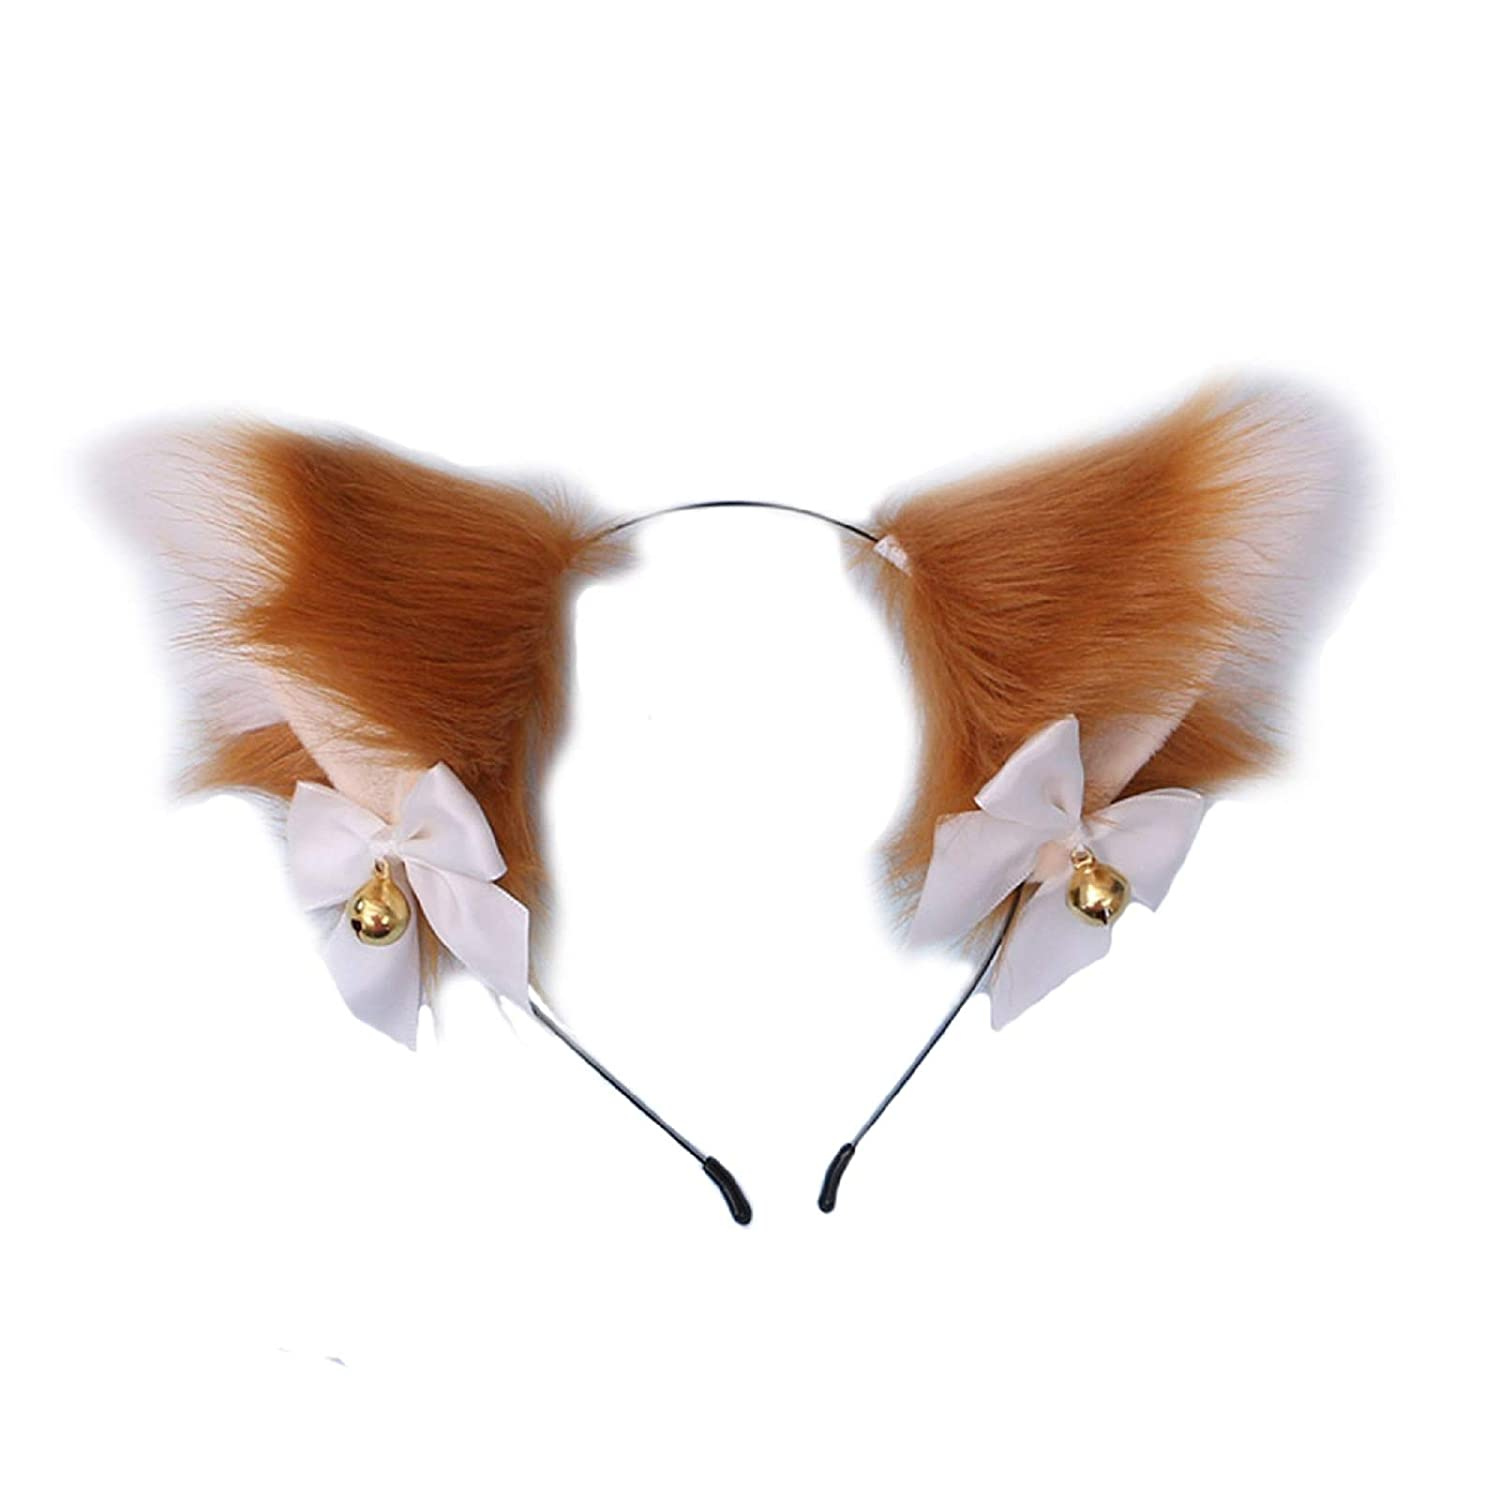 One Size Fits Most Cat Fox or Wolf Animal Ear Headband Heathered Cream Oatmeal and Tan